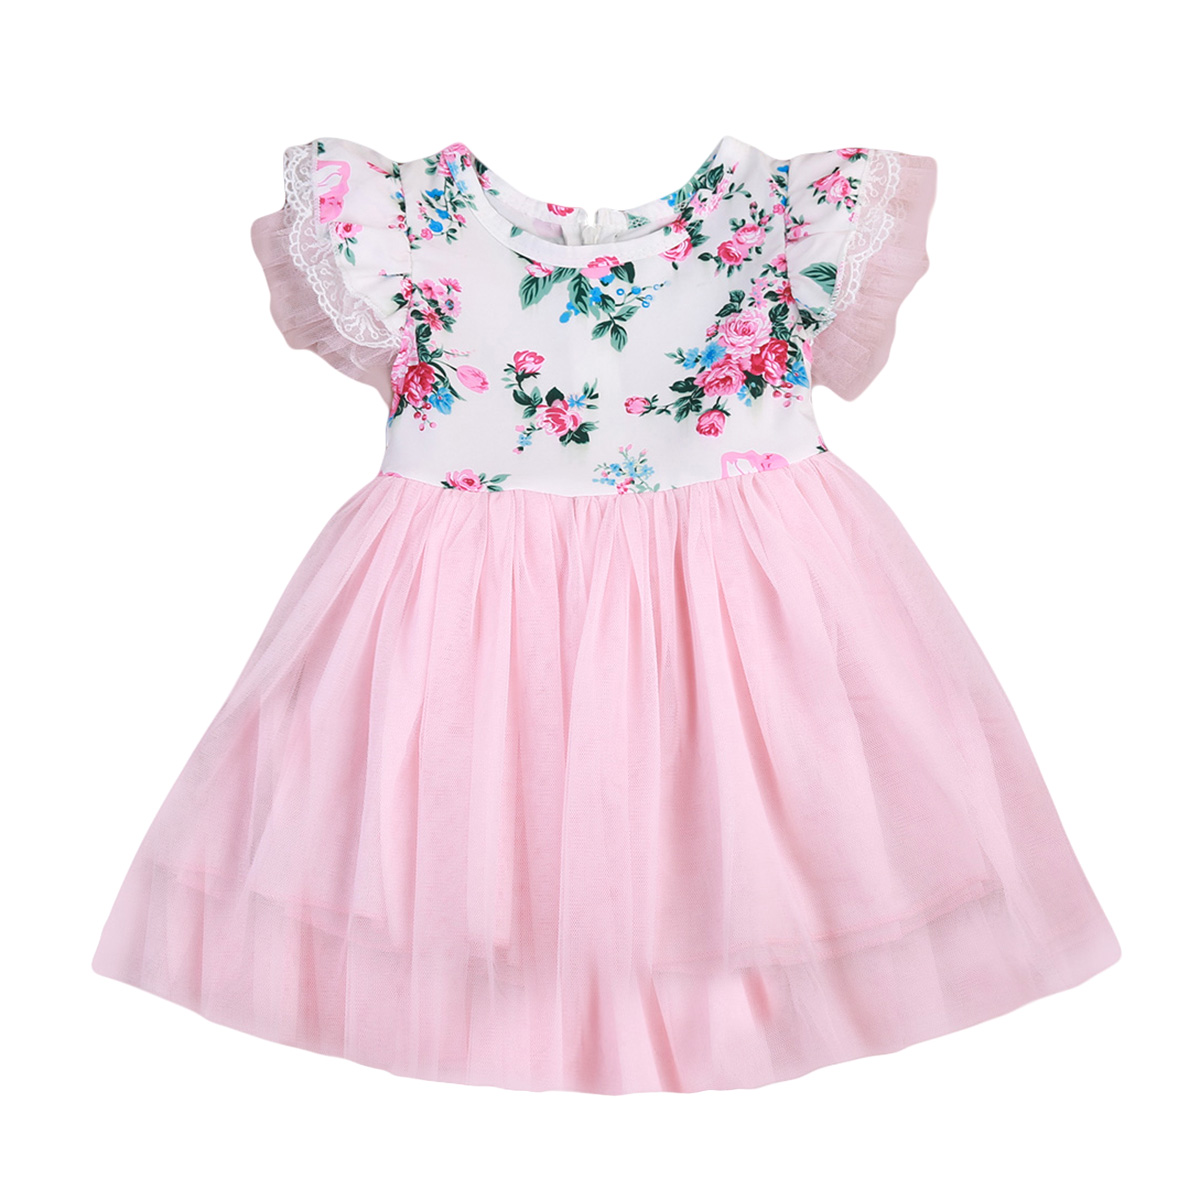 Toddler Baby Girl Floral Sleeveless Lace Tutu Dress Party Wedding Princess Long Sleeve  Pageant Dresses Kids Summer Clothes 1-6Y sweetness test refractometer sugar measuring reader meter range 0 20